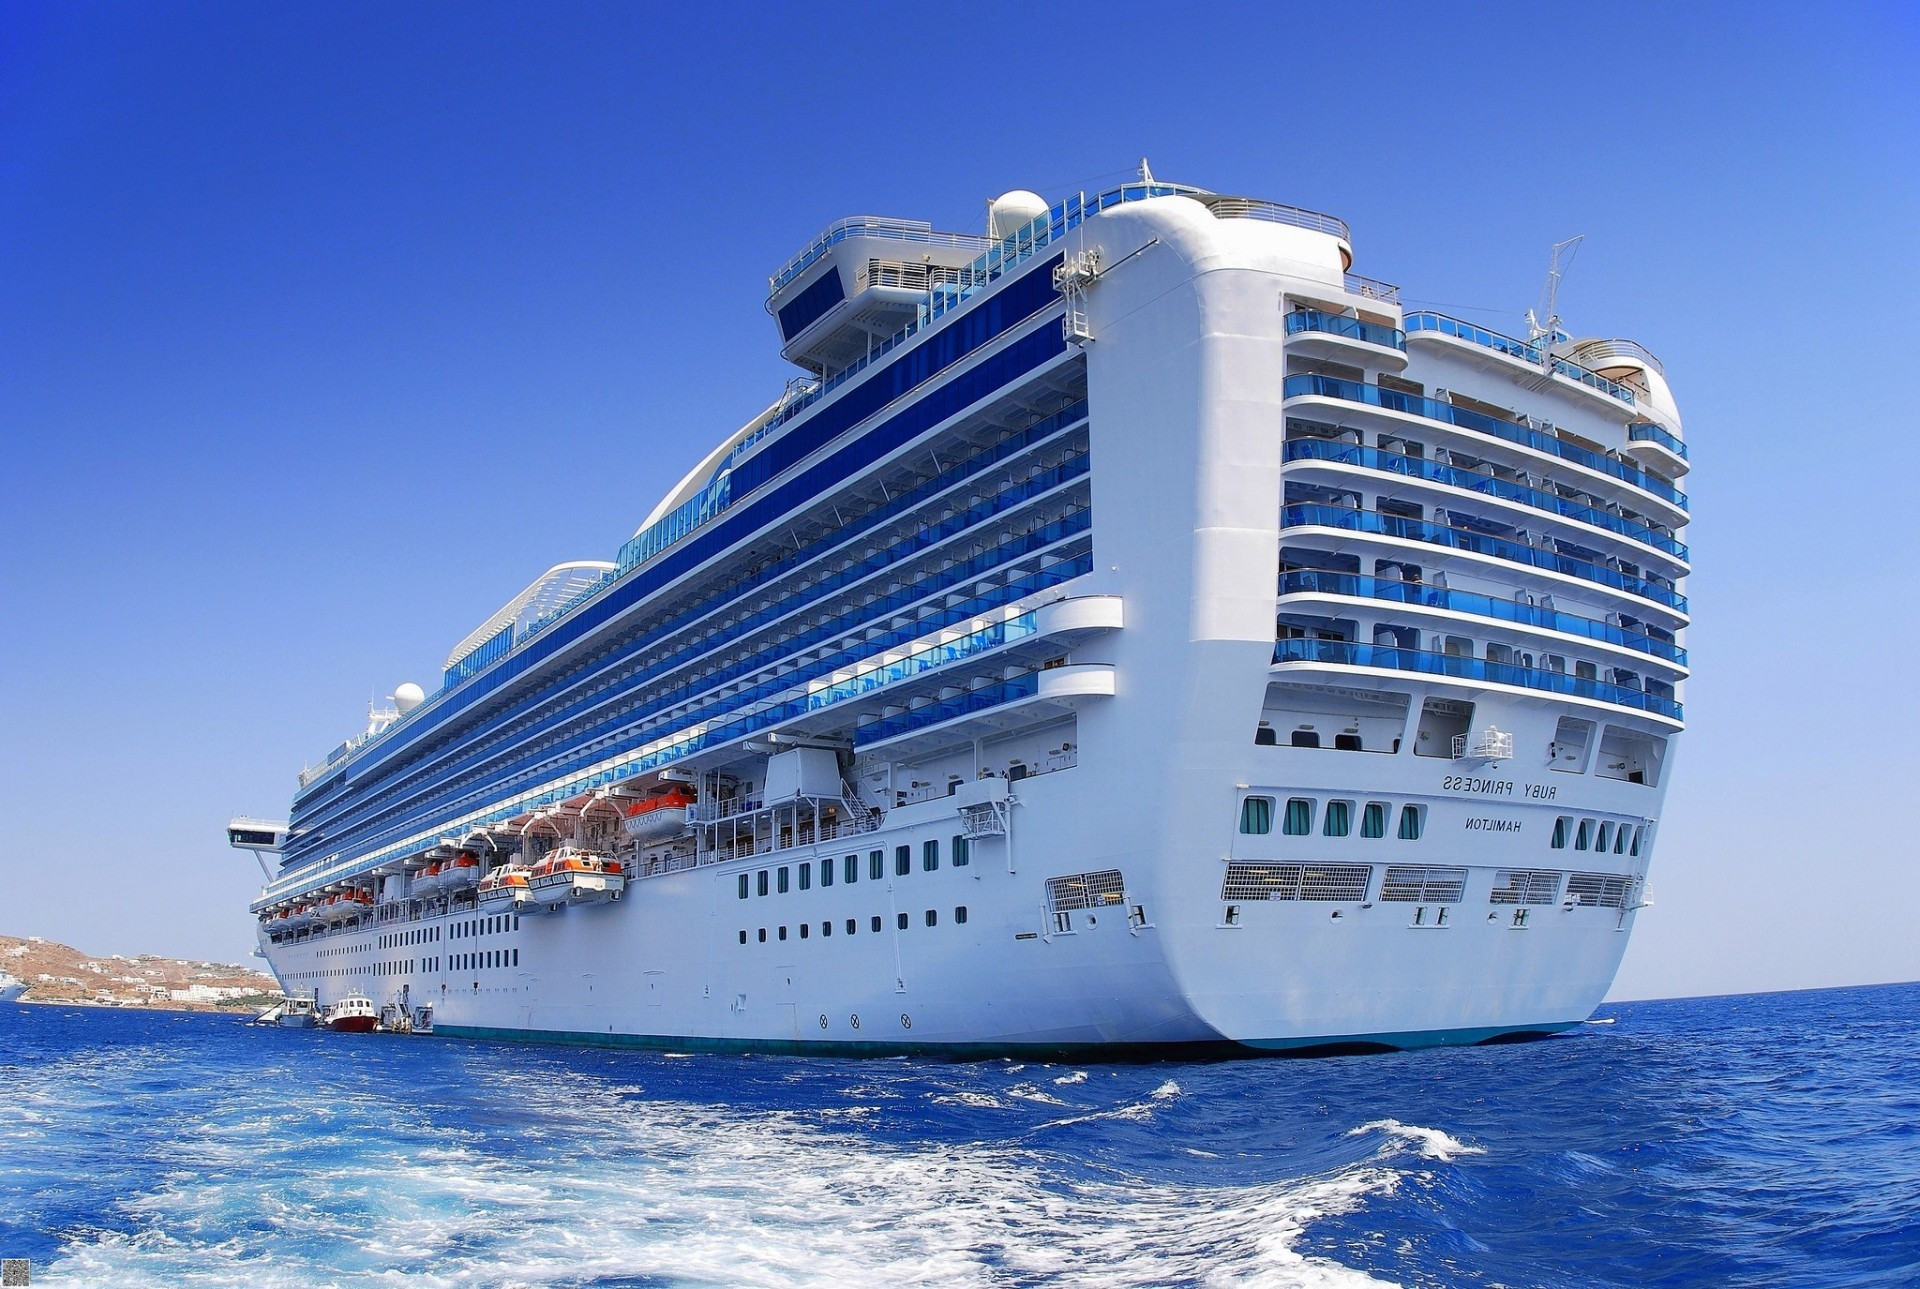 large ships and liners travel water sky outdoors sail sea watercraft cruise ship ship ocean transportation system